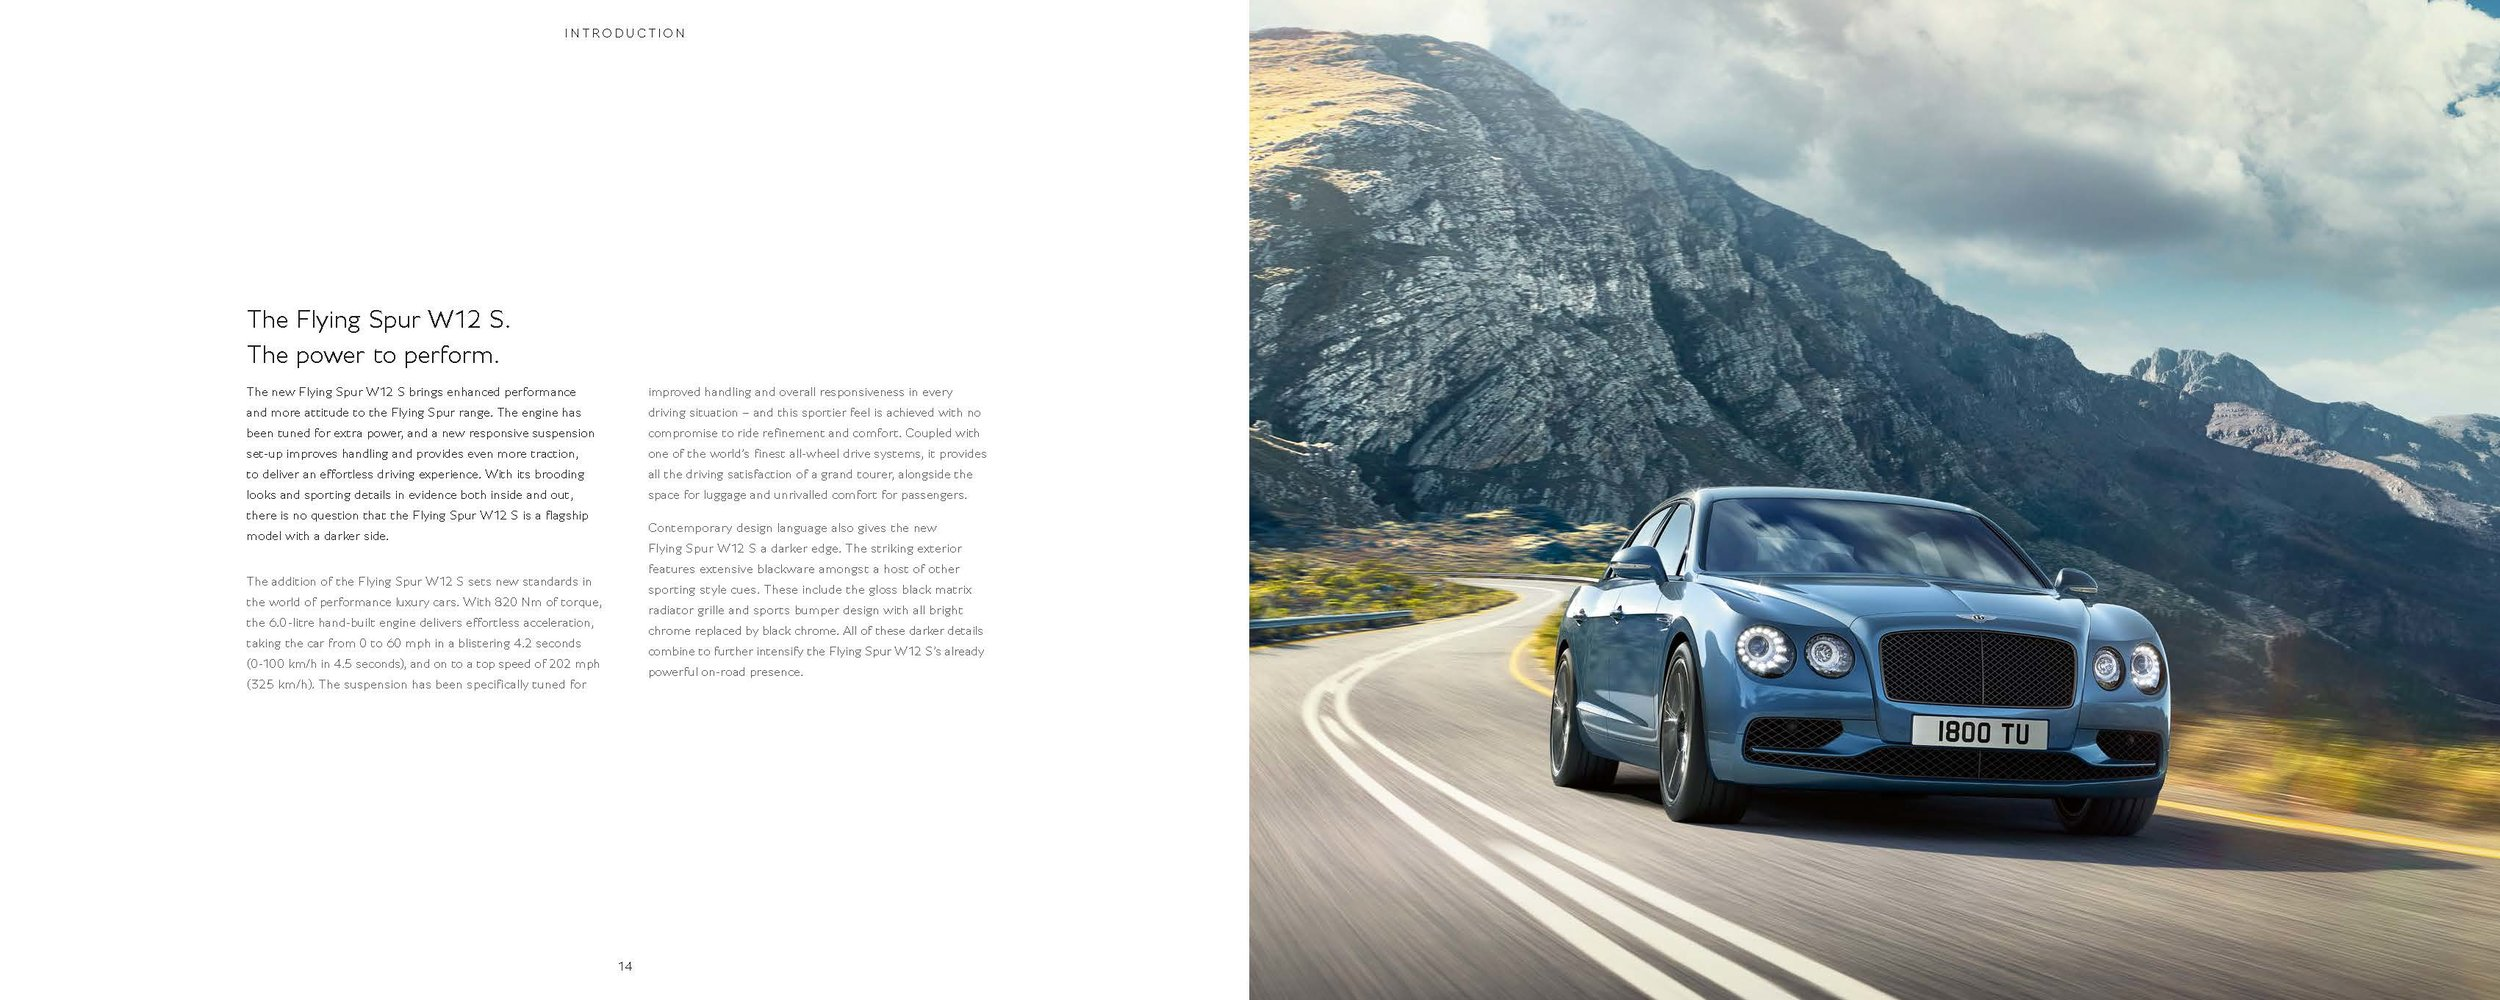 BENFS-16-012_Flying Spur Customer Book Cover & Contents CLEAN_v15_Page_10.jpg